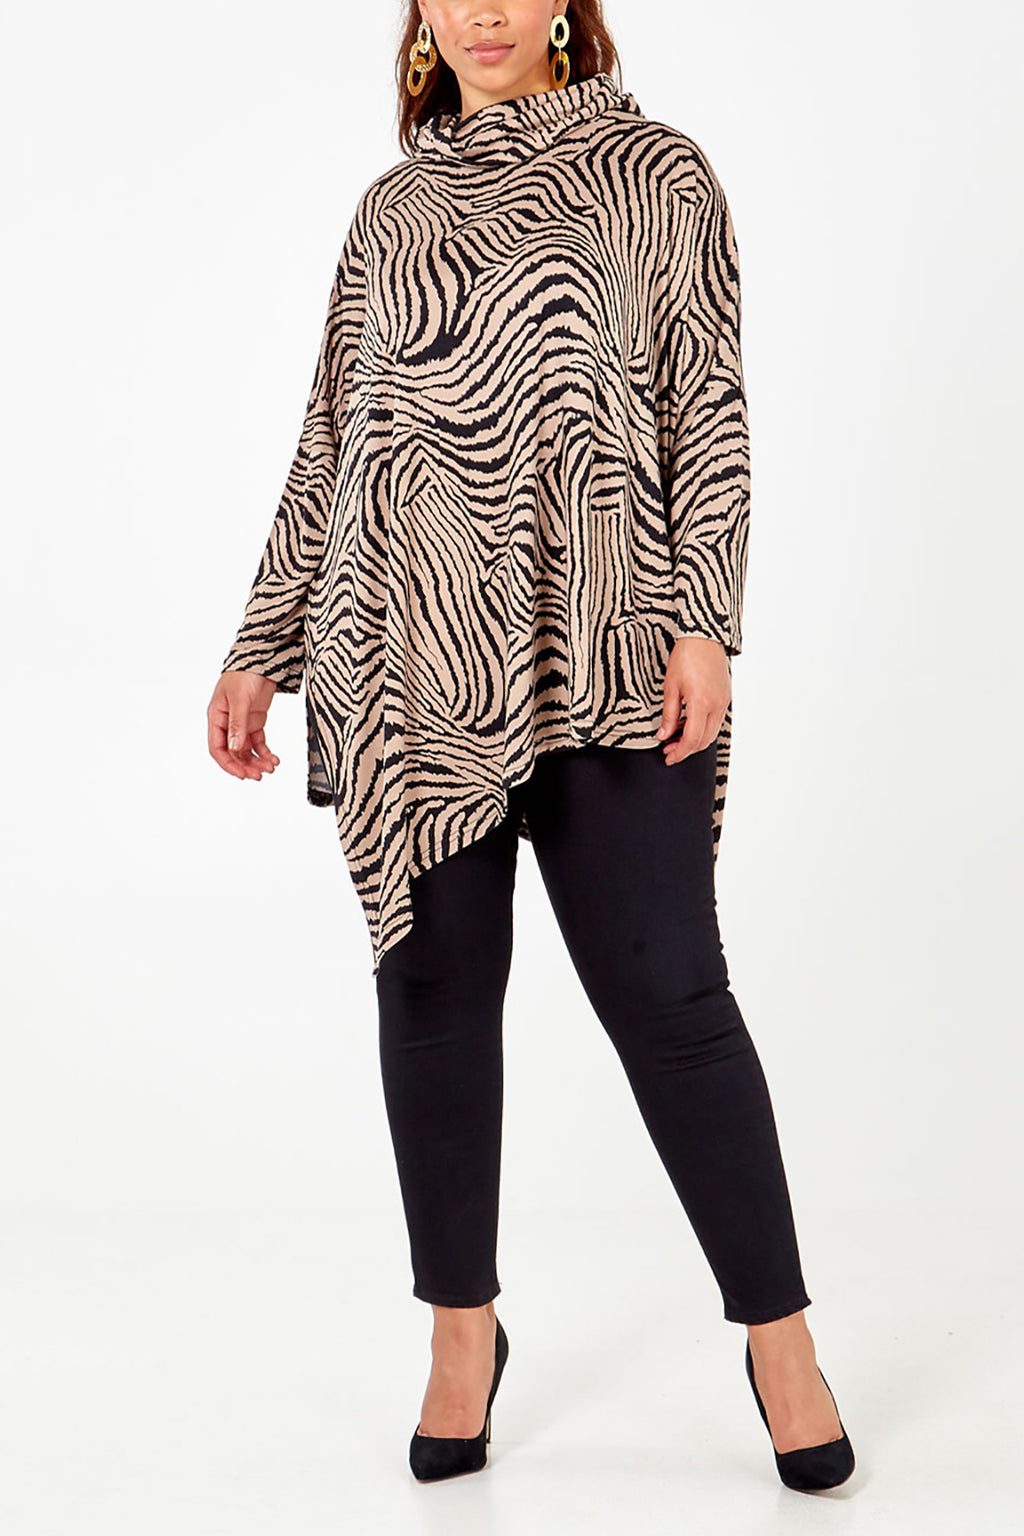 Curve - Abstract Zebra Cowl Neck Top